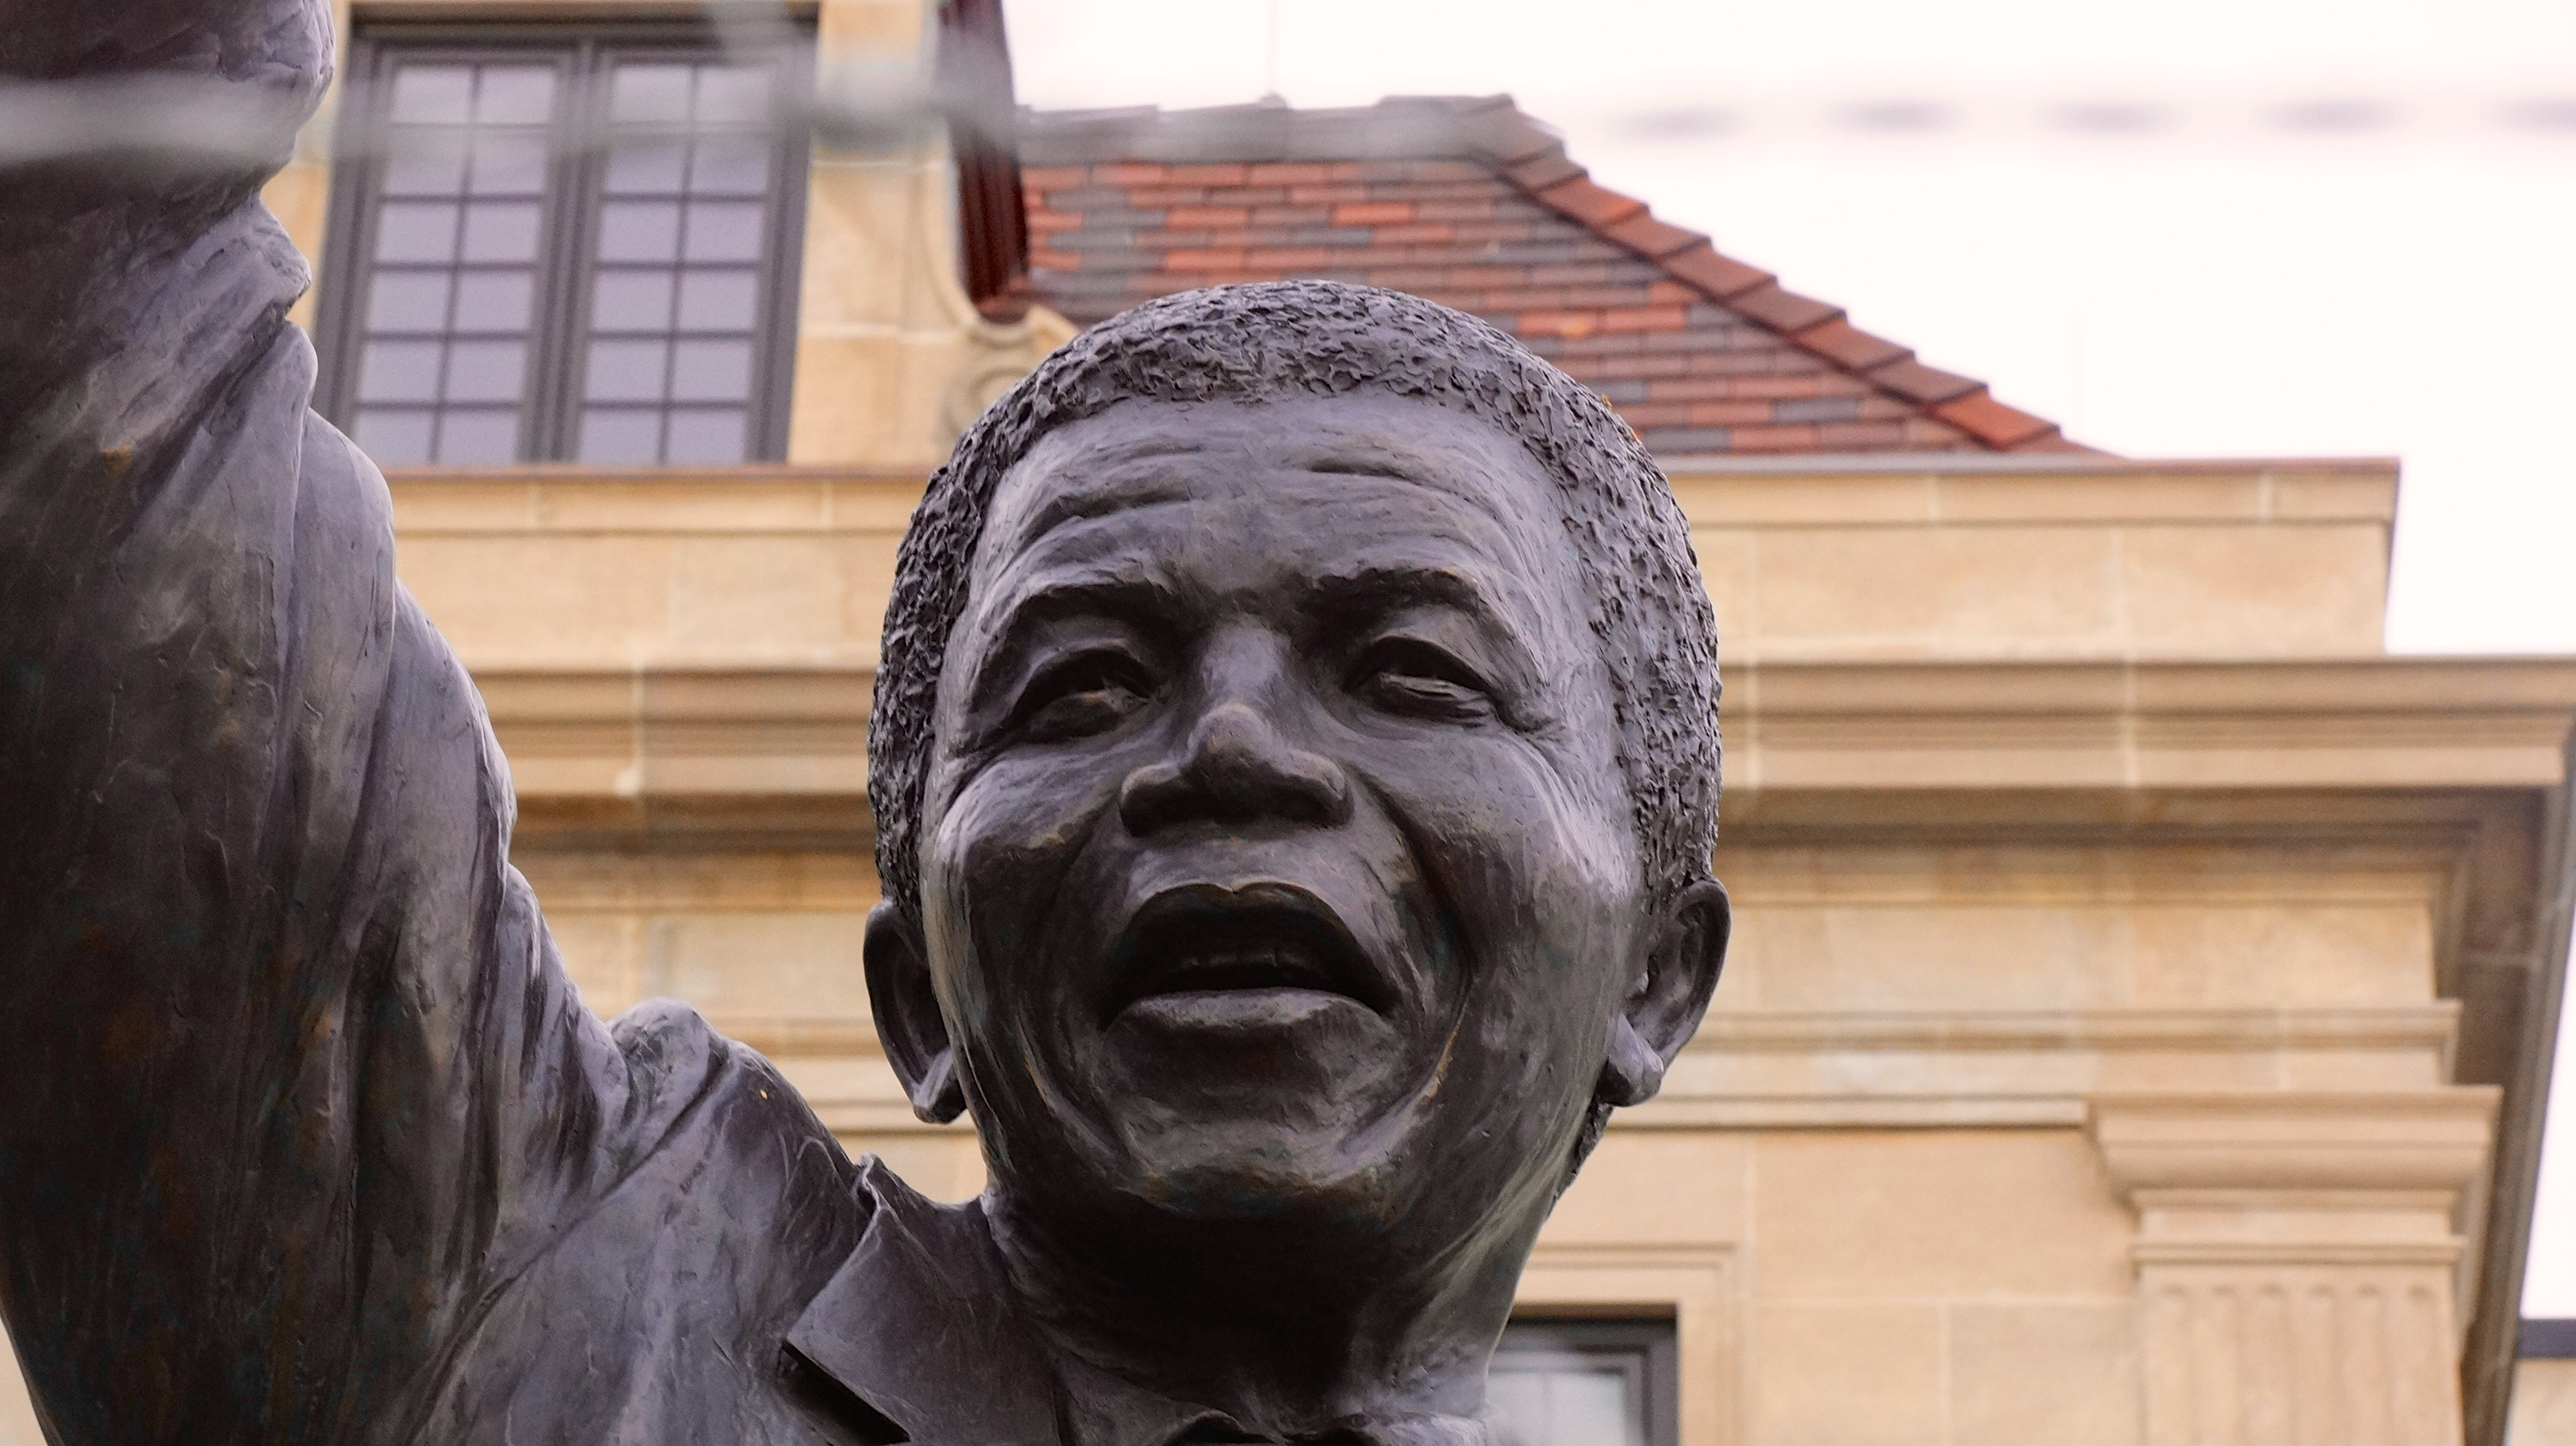 A statue of Nelson Mandela in front of the South African Embassy in Washington, DC. Photo: Ted Eytan / flickr